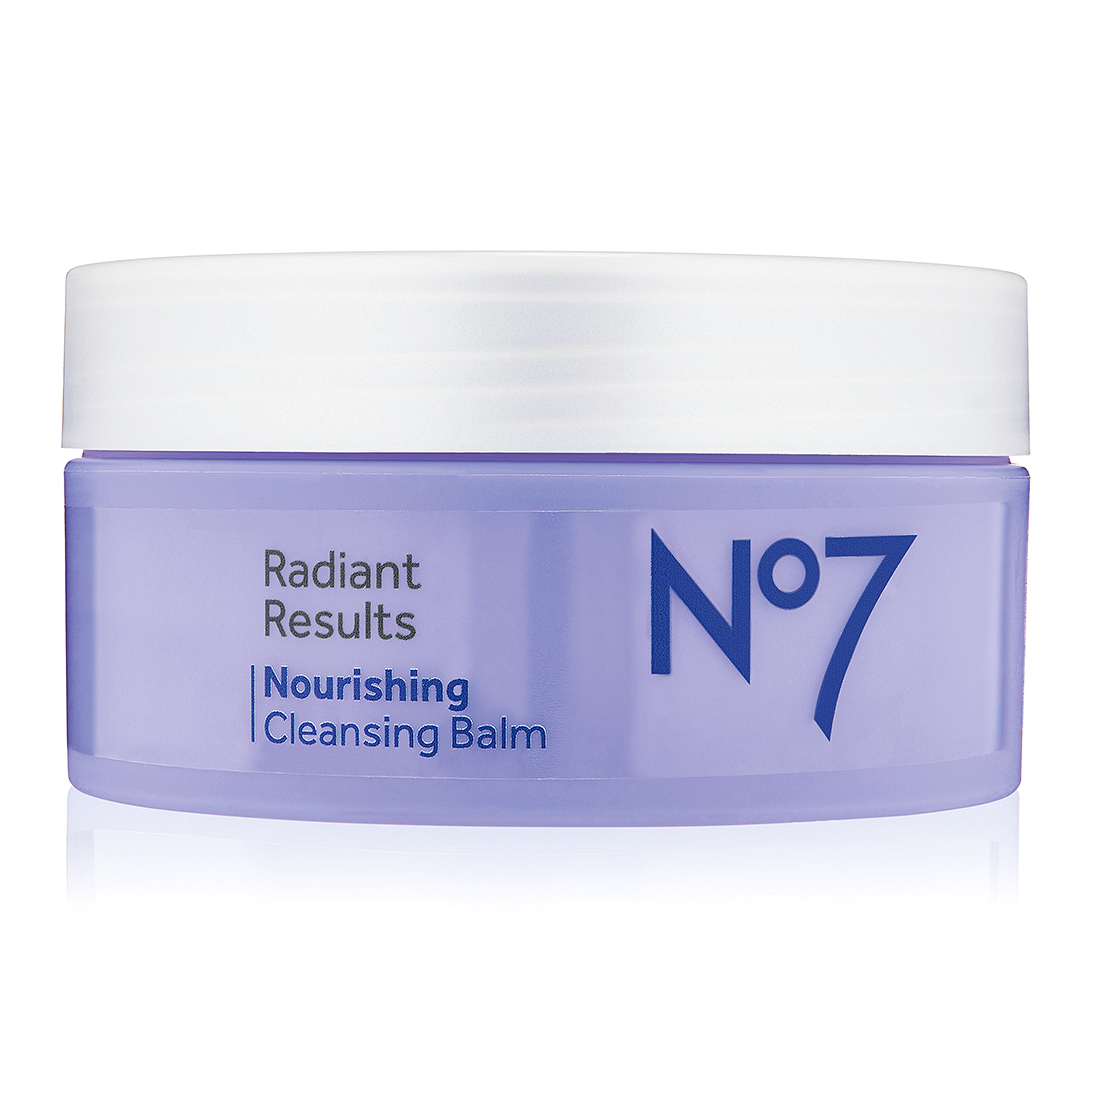 radiant results nourishing cleansing balm by no7